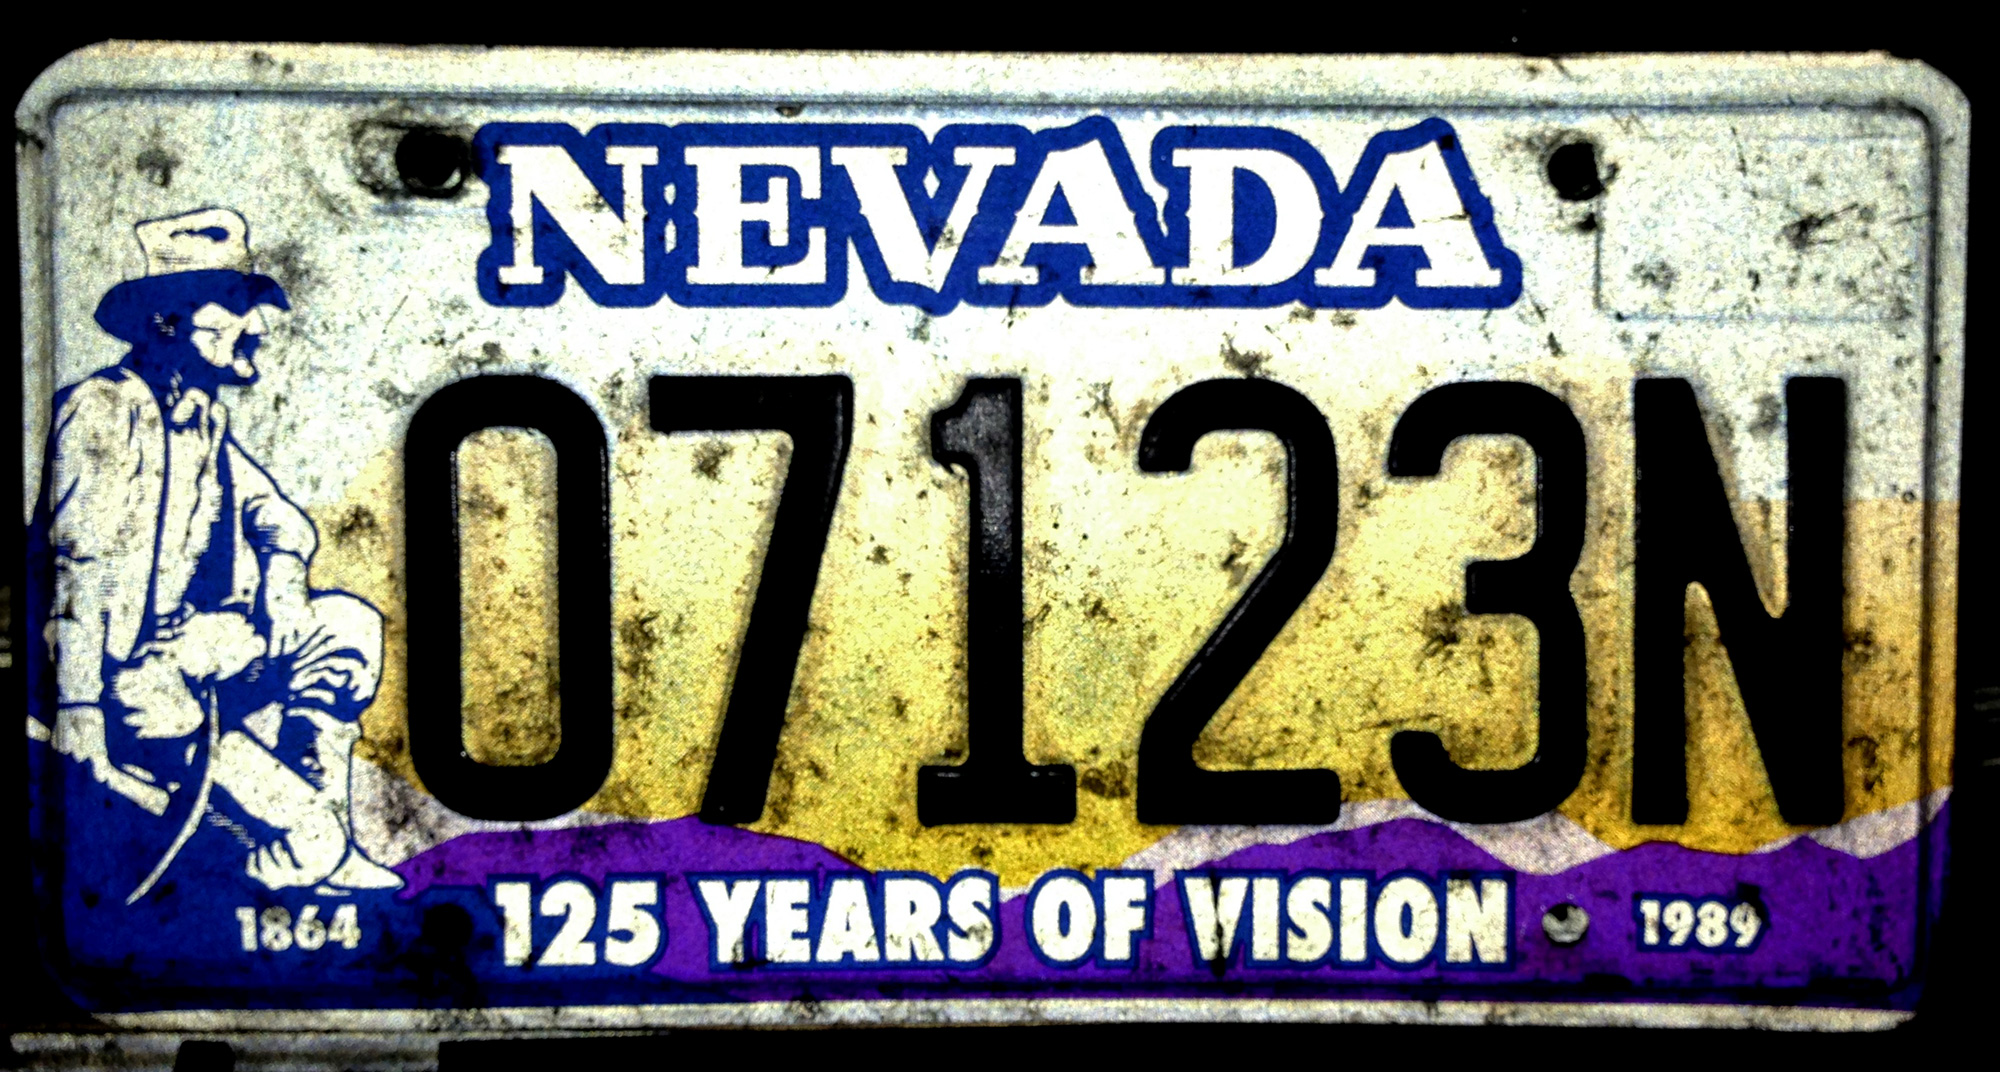 Route 66 Store - - Nevada 125 Years of Vision License Plate